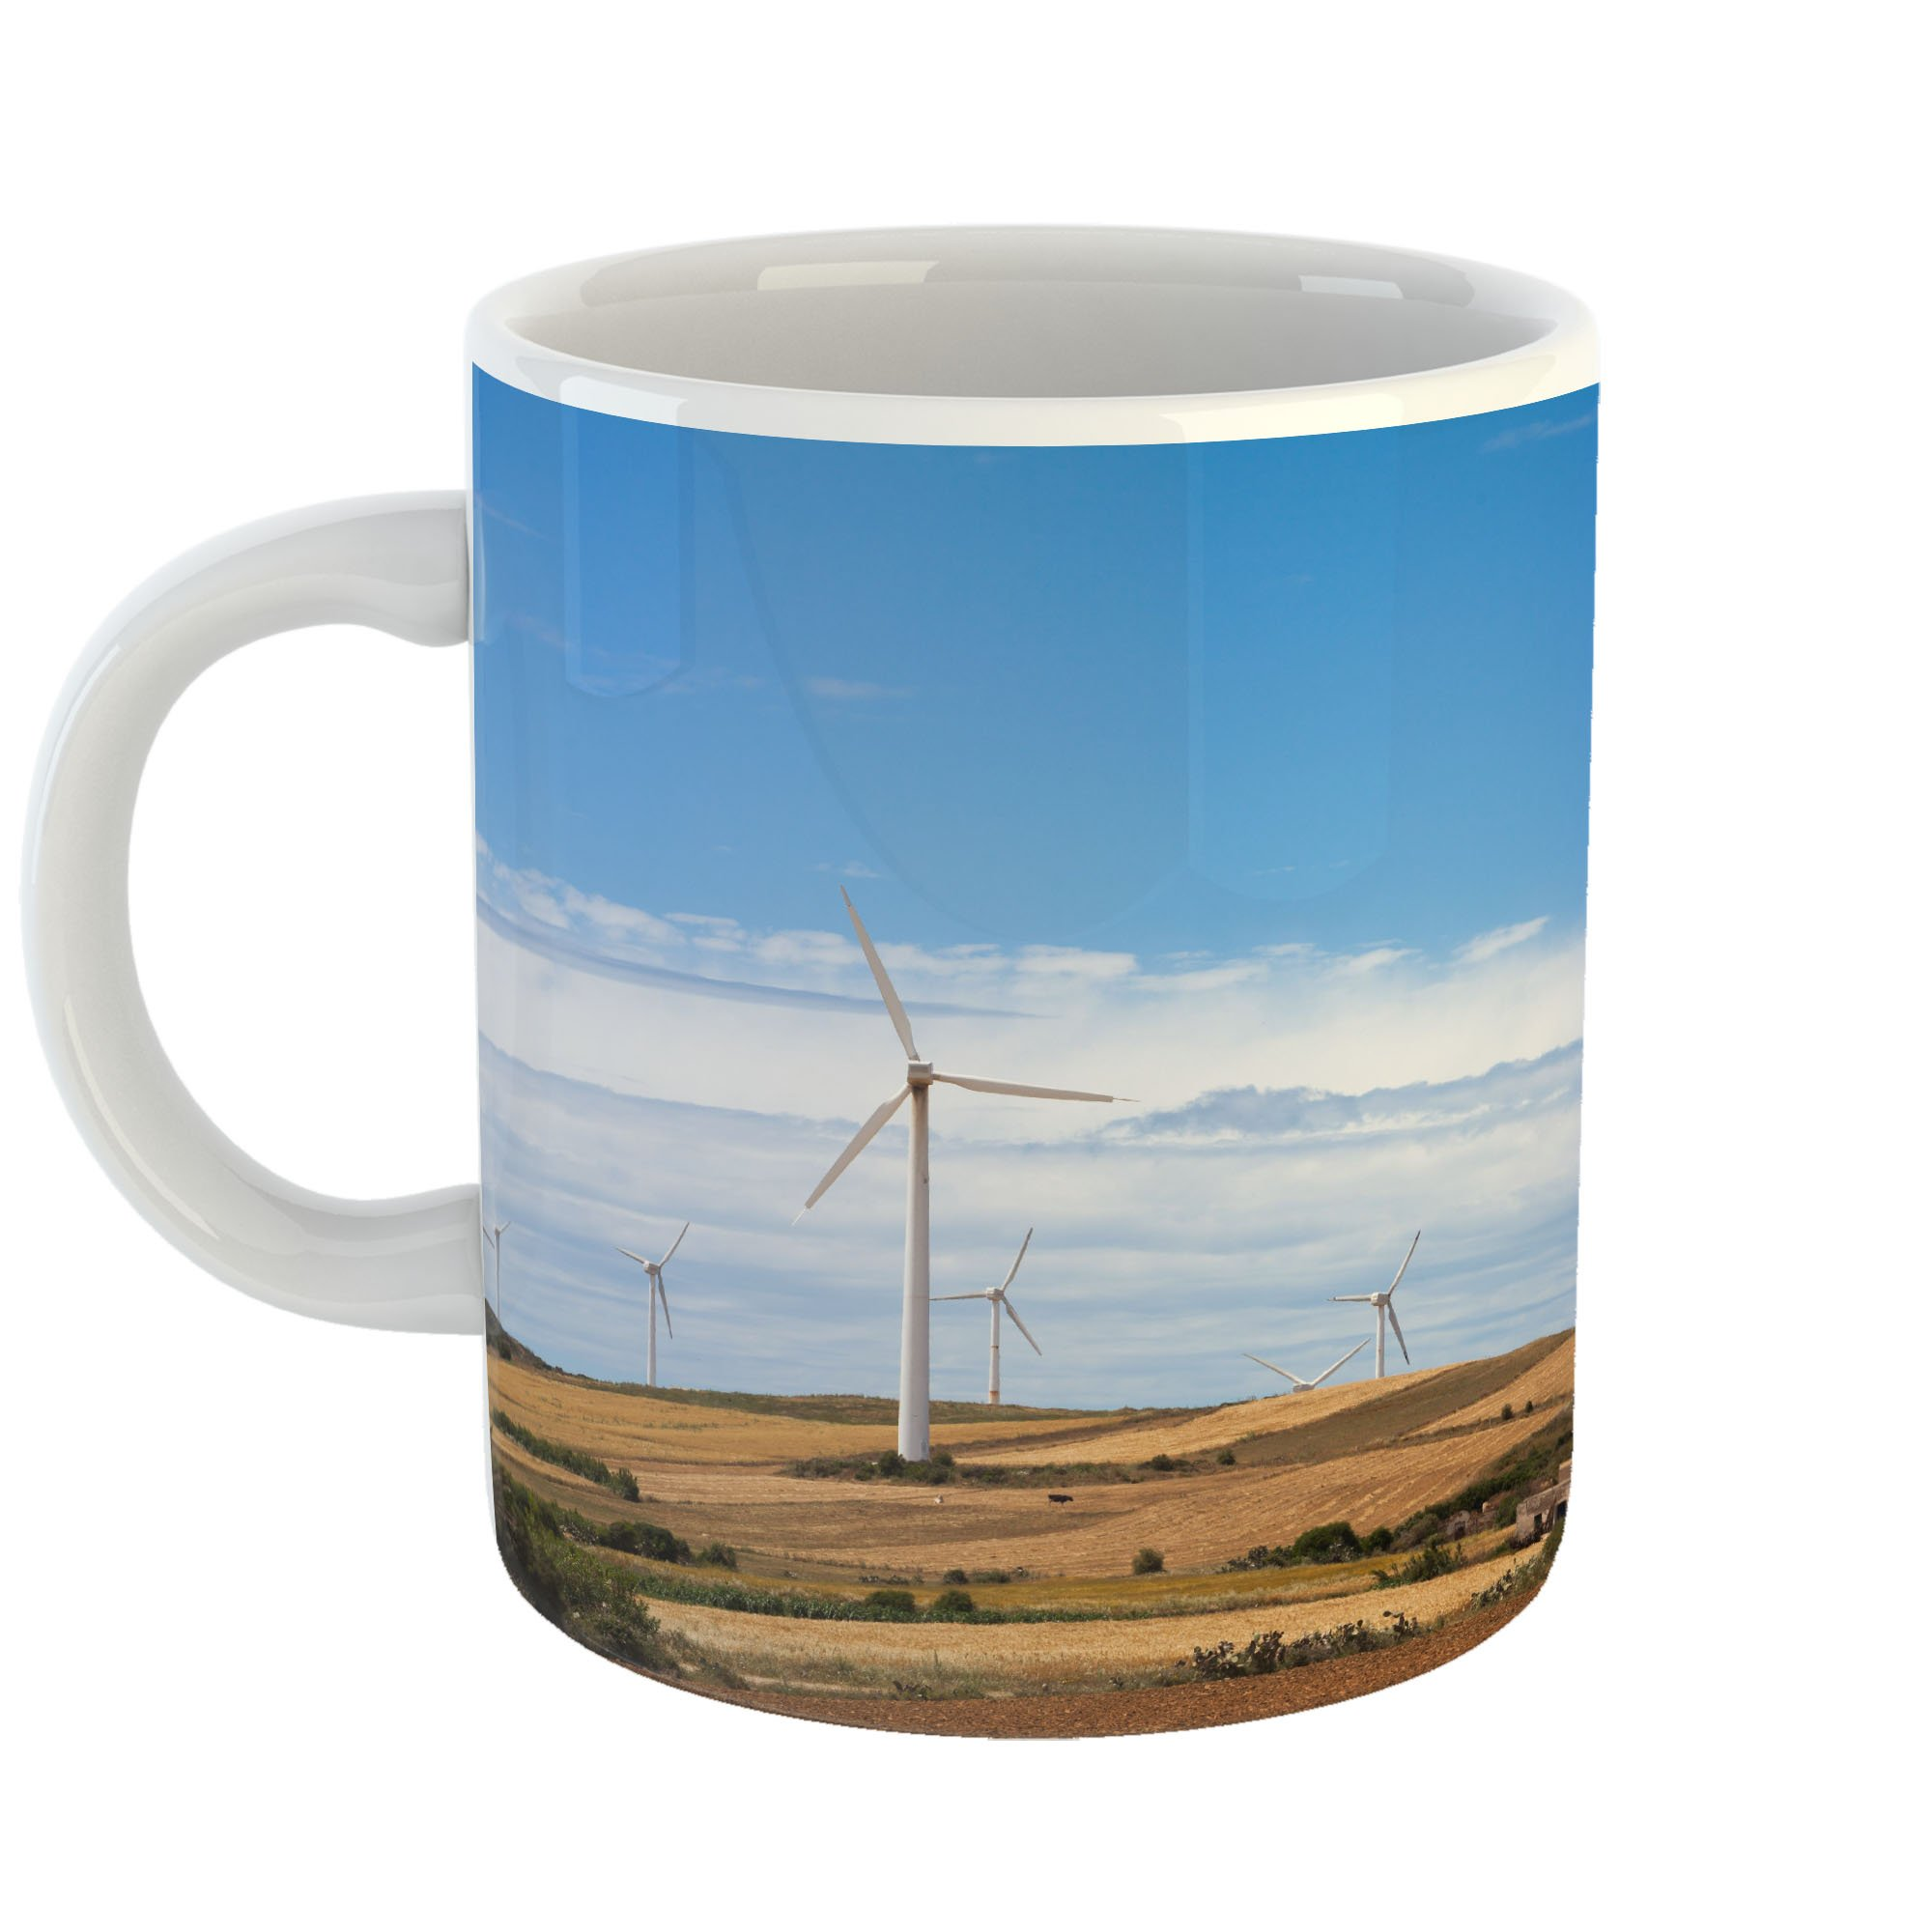 Westlake Art - Wind Solar - 11oz Coffee Cup Mug - Modern Picture Photography Artwork Home Office Birthday Gift - 11 Ounce (2BE0-3231D)